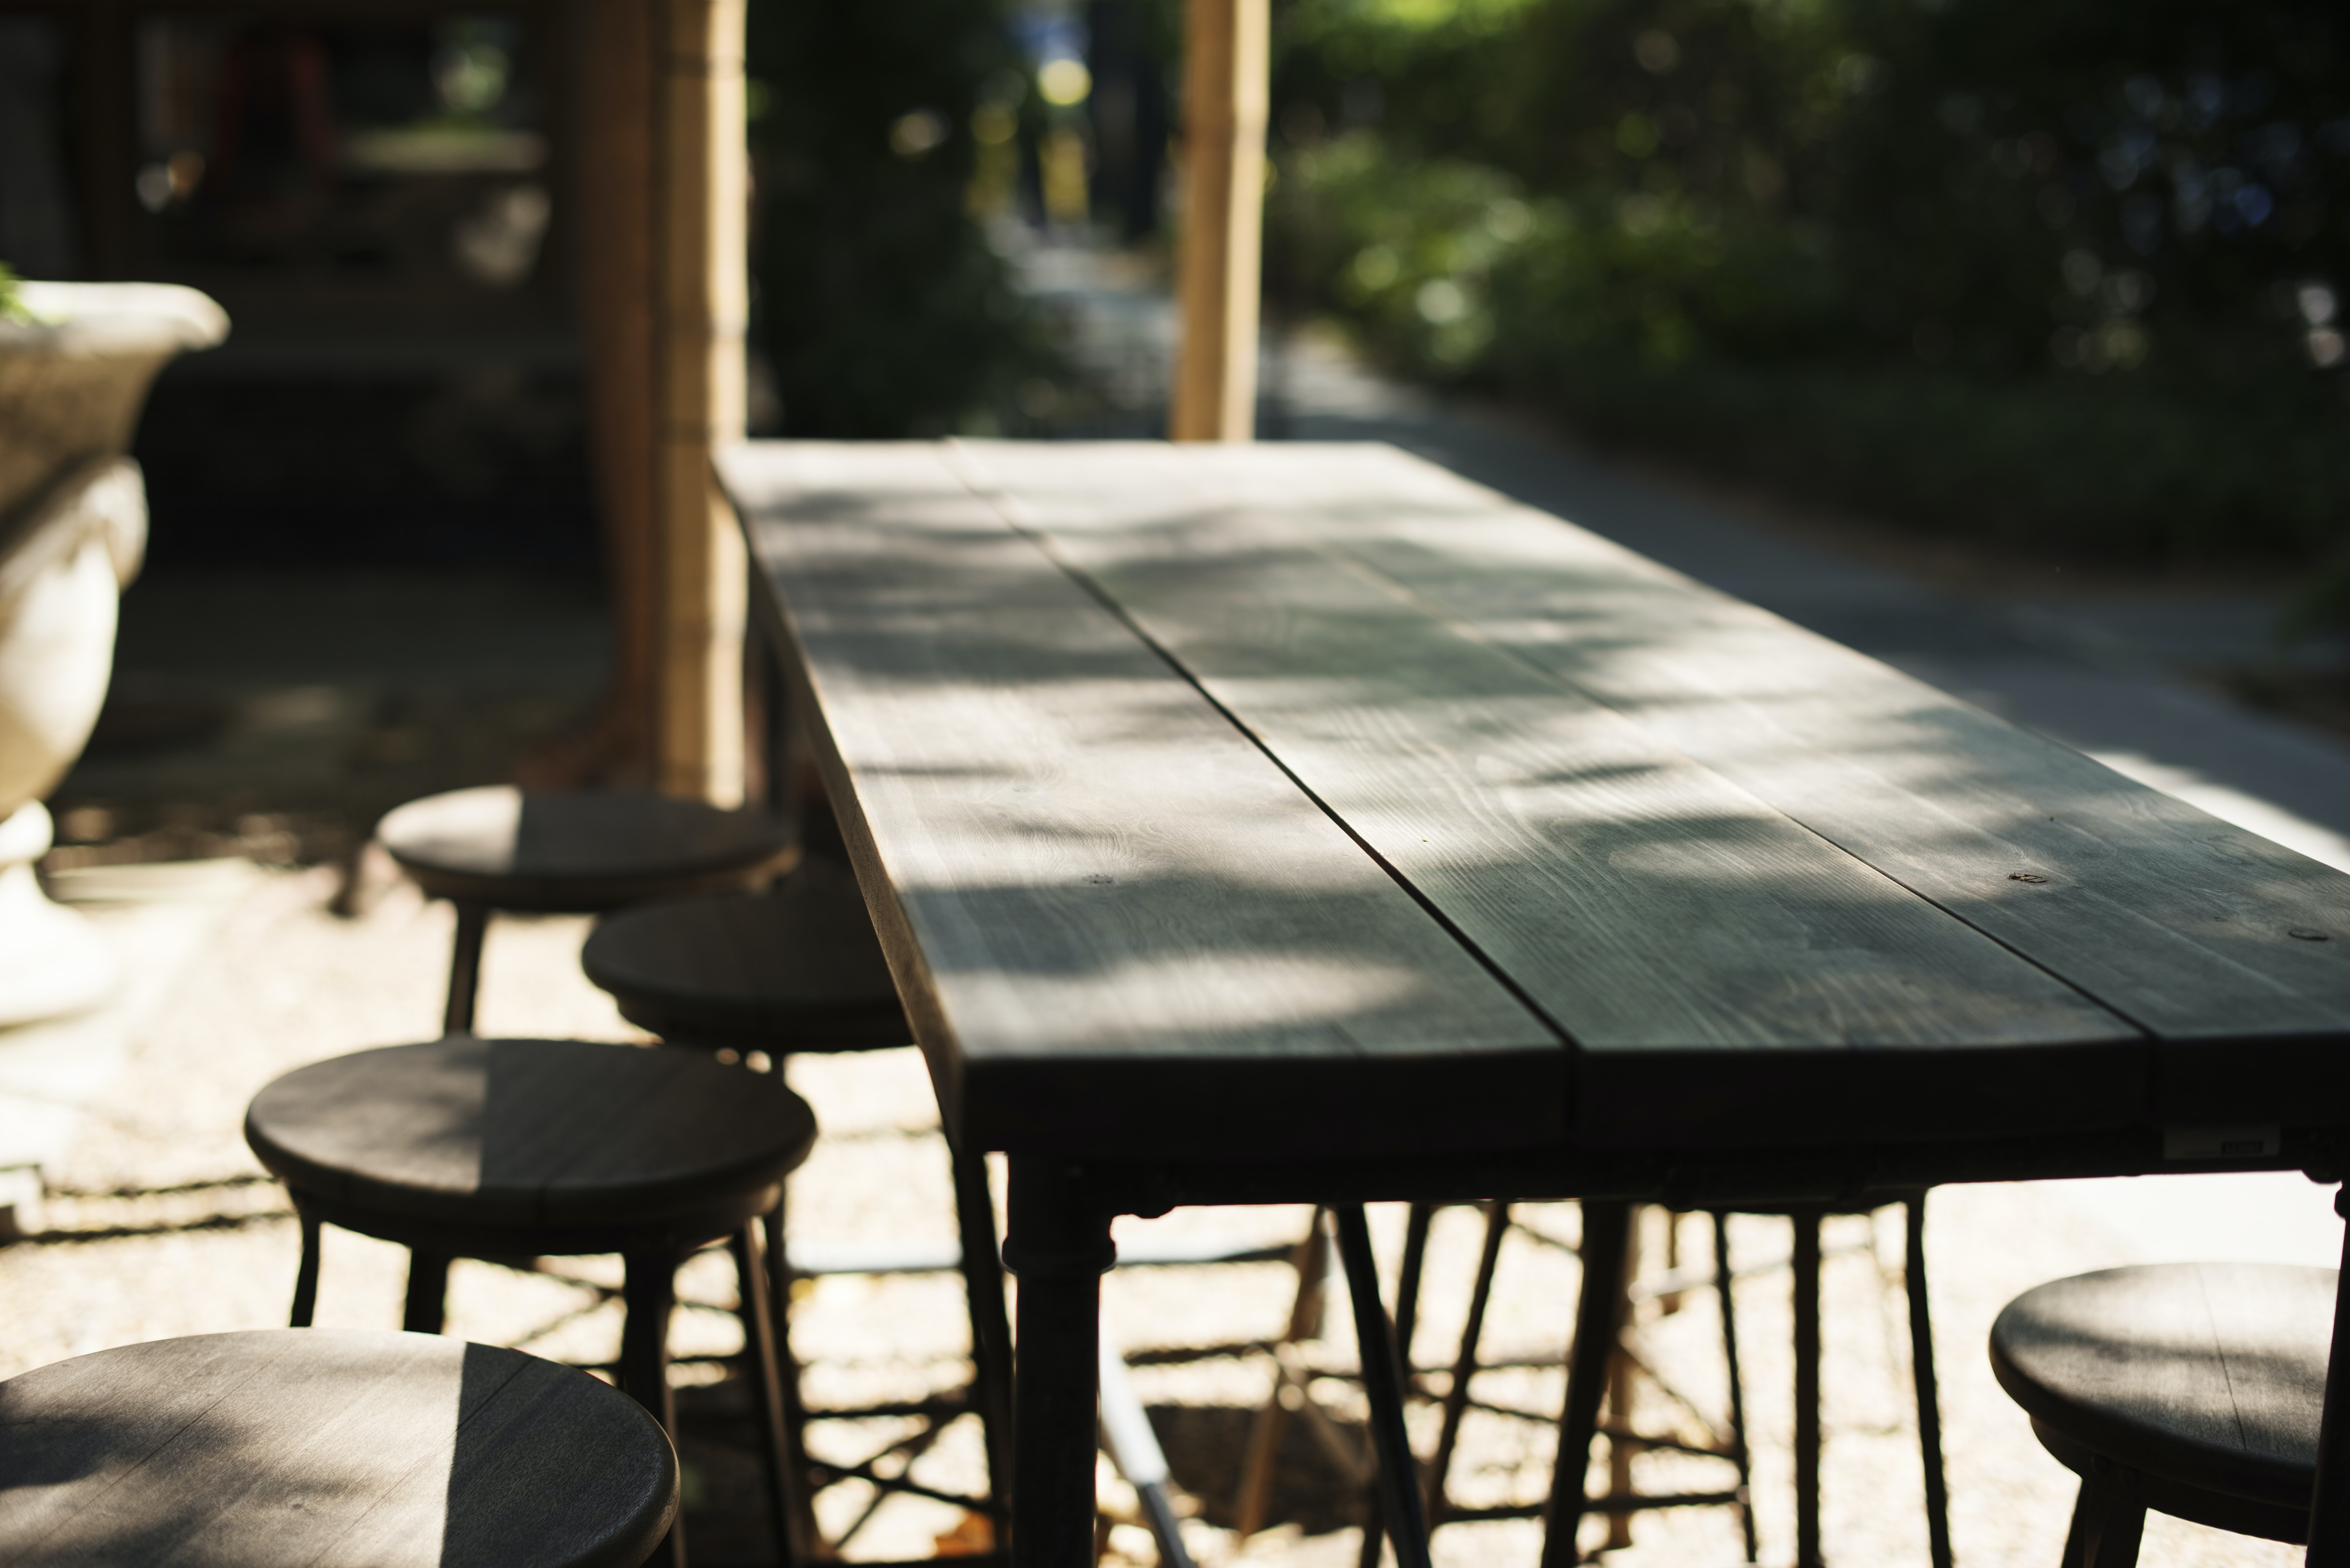 Empty wood table with stools on an outdoor patio